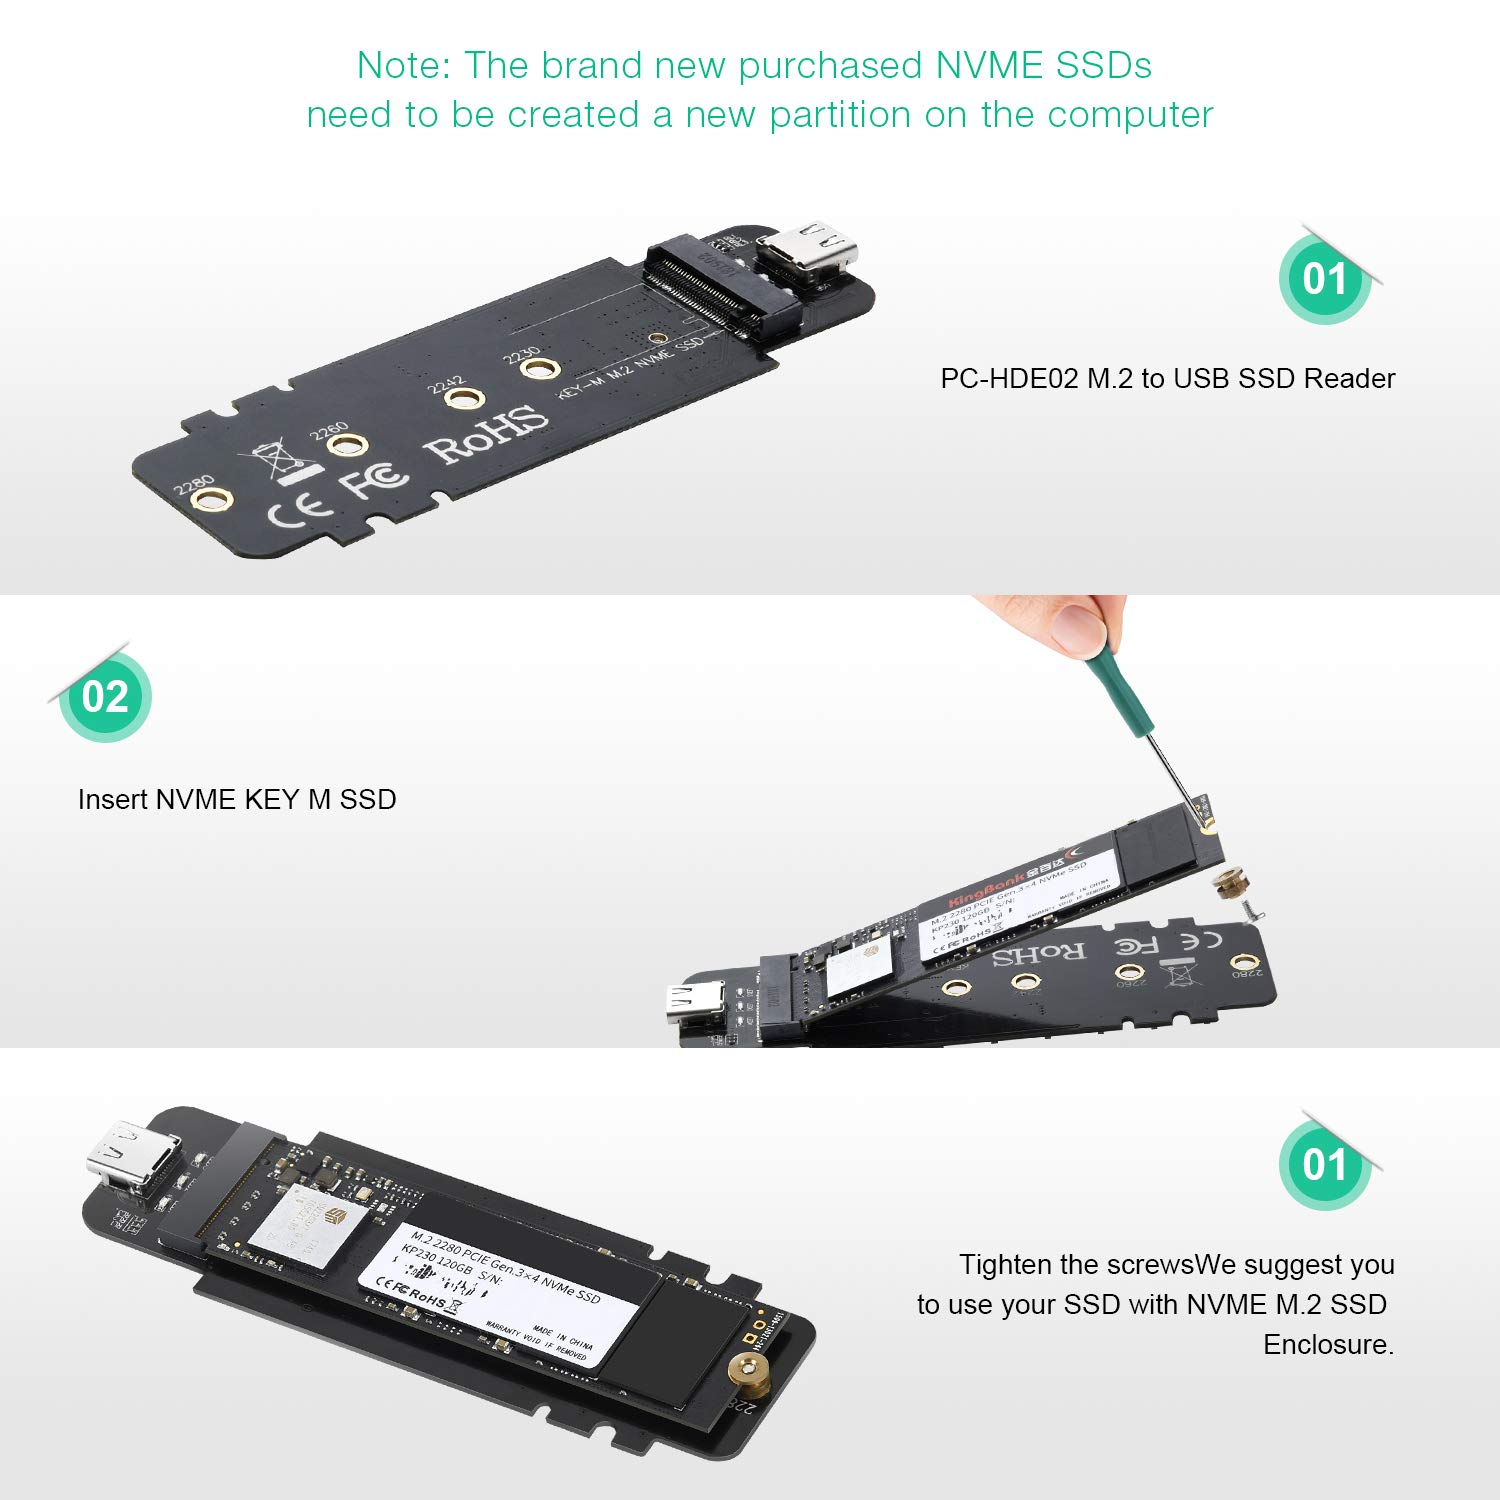 USB 3.1 Type-C to M.2 NVMe SSD Adapter,M-Key PCI-E NVMe SSD Based to USB 10GBPS External M.2 PCI-E NVMe Hard Drive Reader Adapter Support Drive Type 2230 2242 2260 2280 by CHOETECH (Image #7)